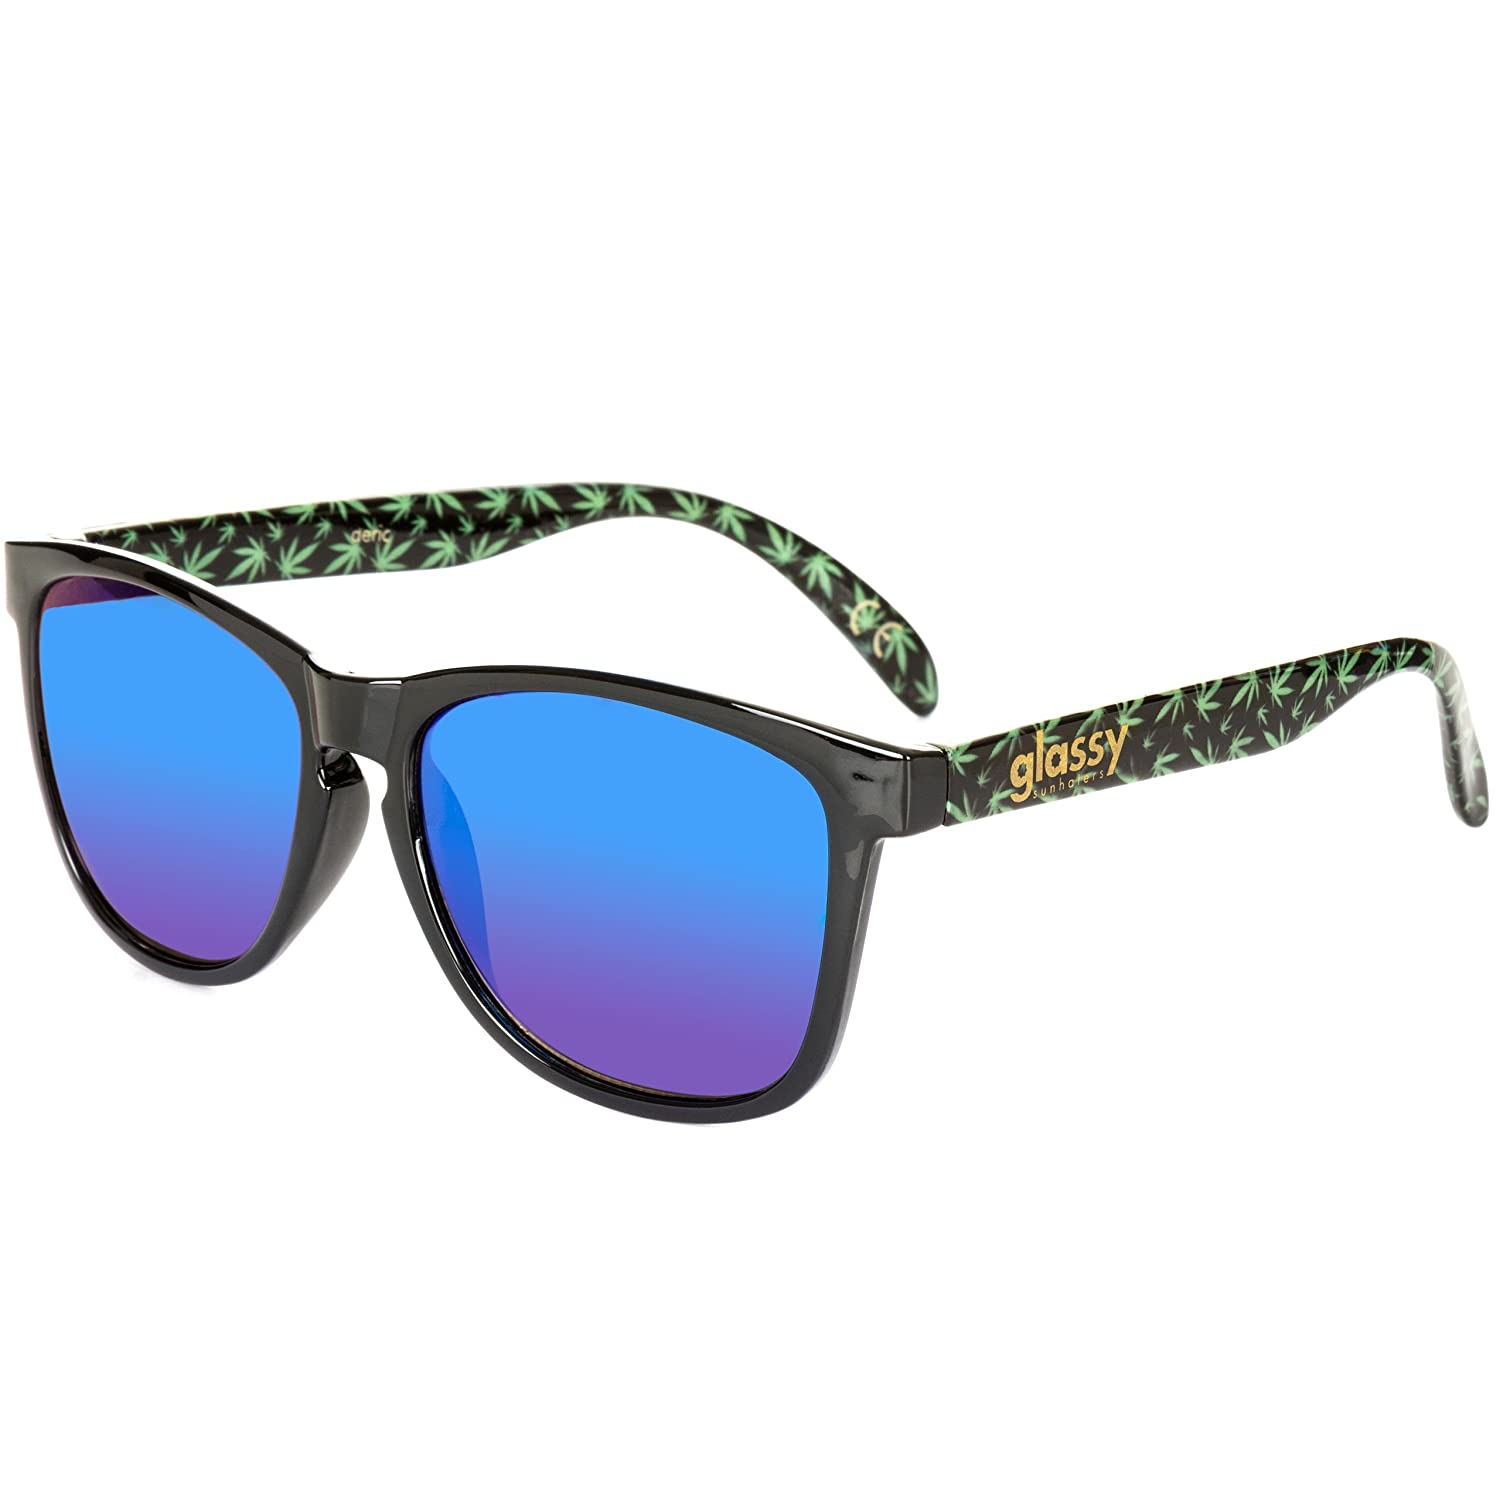 9f2b10f0837 Glassy Deric Kronik Sunhater Sunglasses Black Green Mirror Lens   Amazon.co.uk  Clothing